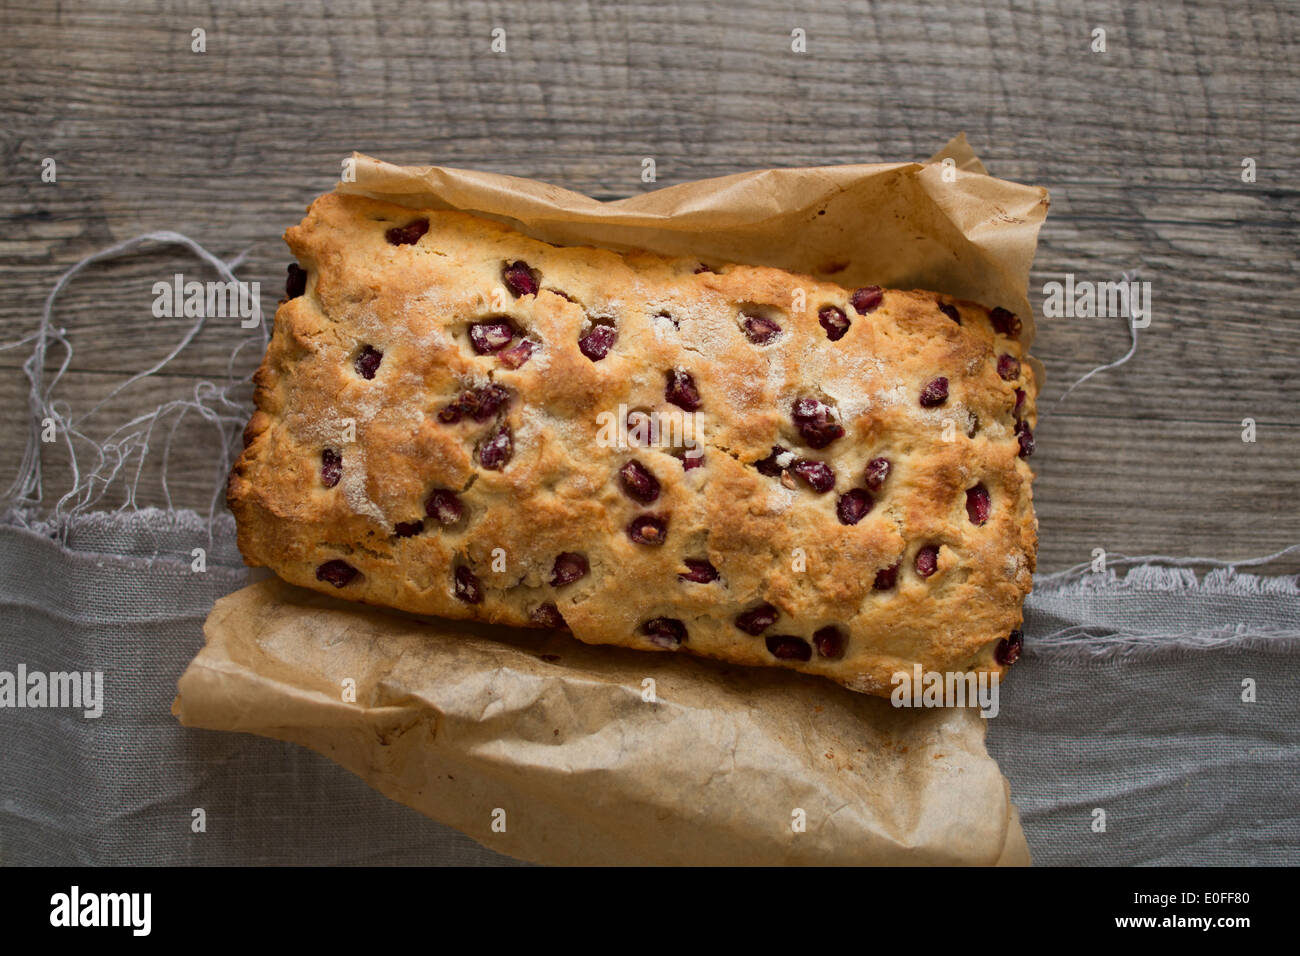 Pomegranate Scone Loaf whole on parchment paper - Stock Image